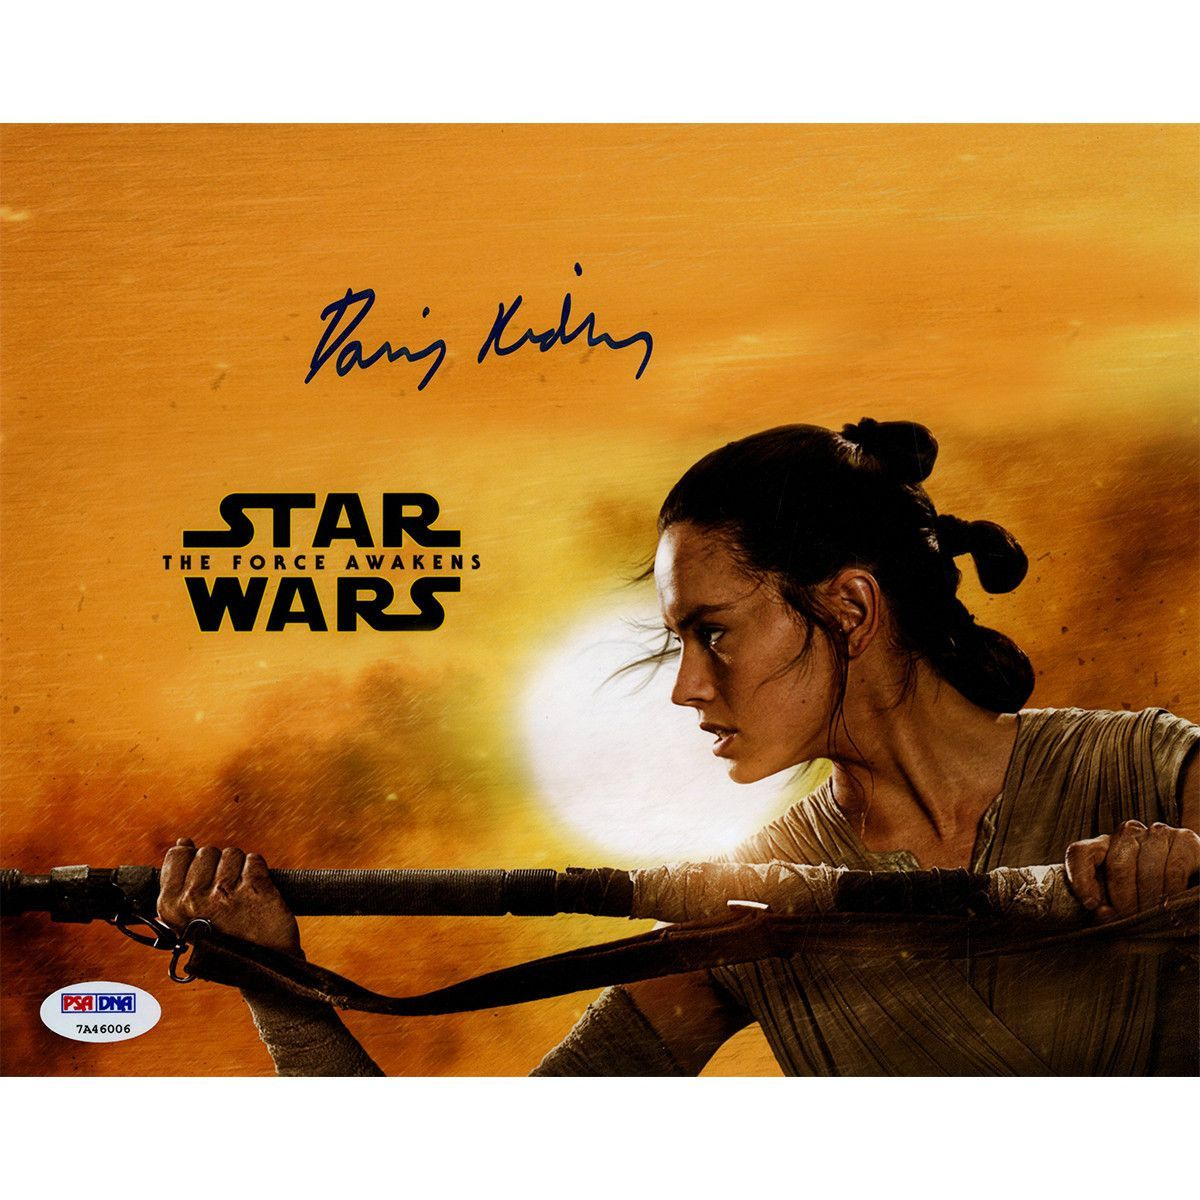 Daisy Ridley Signed Rey Star Wars The Force Awakens Yellow Background 8x10 Photo Psa Dna Ssm Rey Star Wars Star Wars Awesome